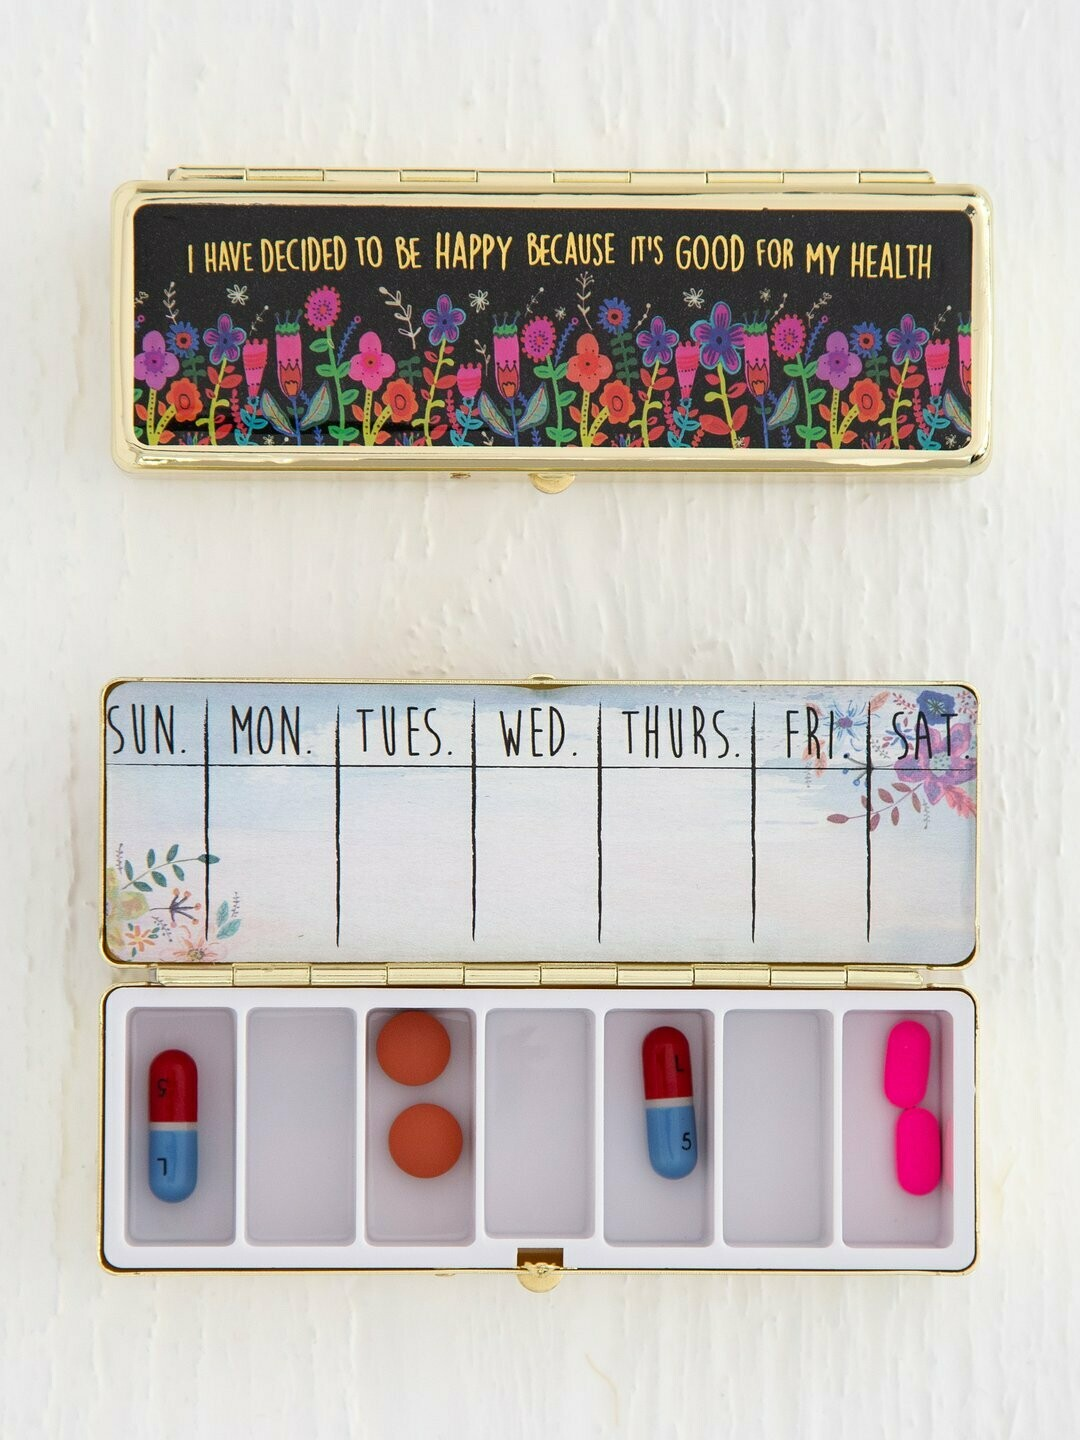 Decide To Be Happy Daily Pill Box